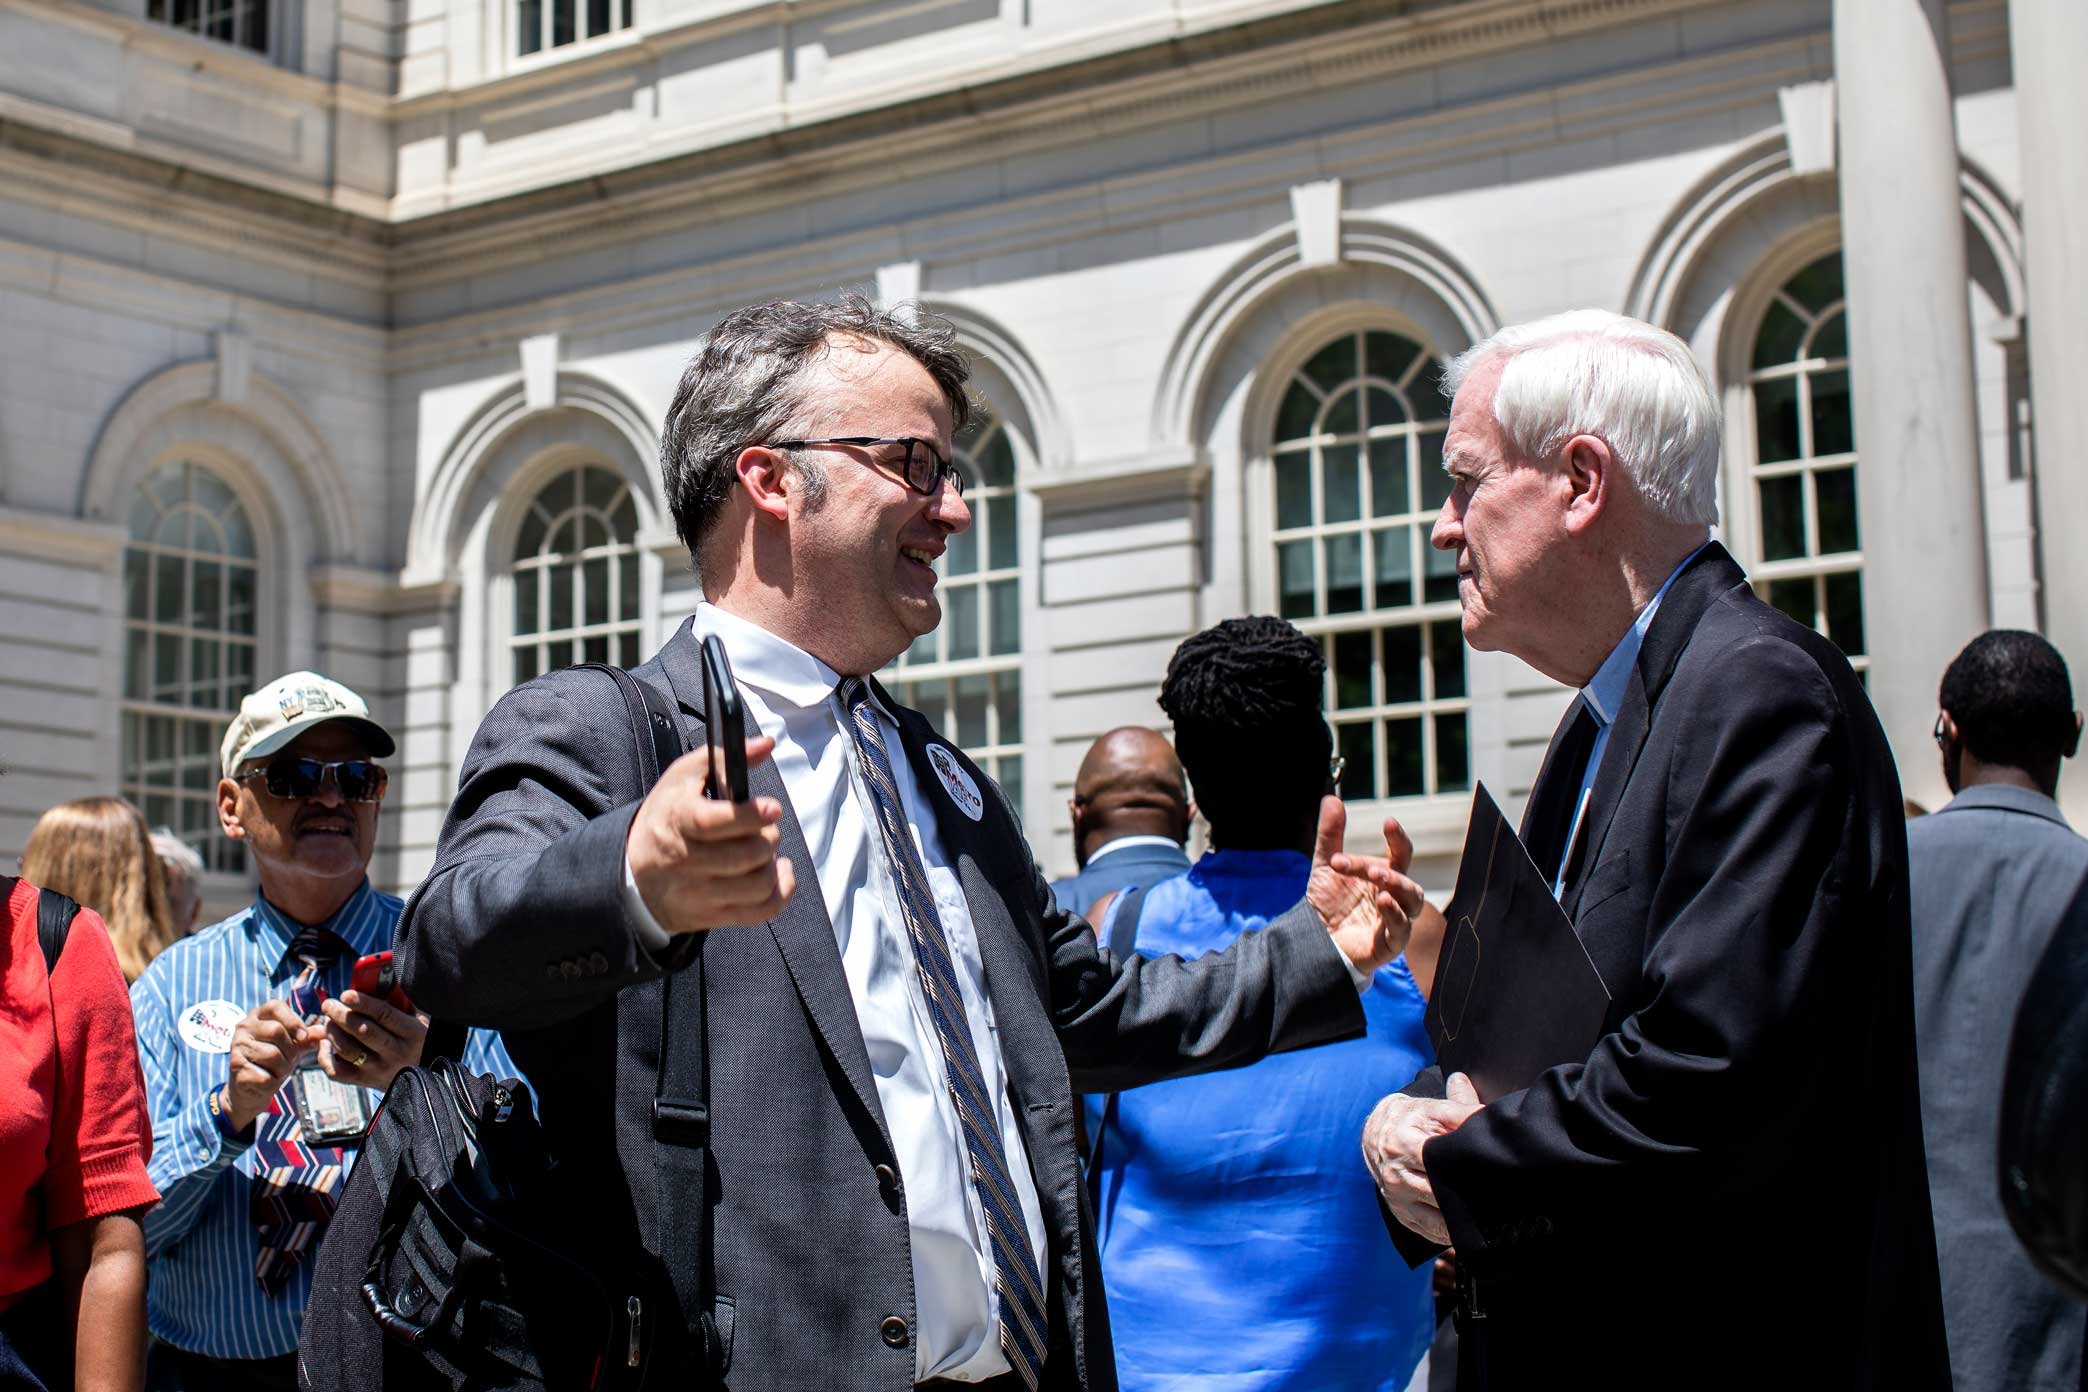 Stanley greets Reverand Francis Skelly, from the Immaculate Conception Church in the South Bronx, after the rally.